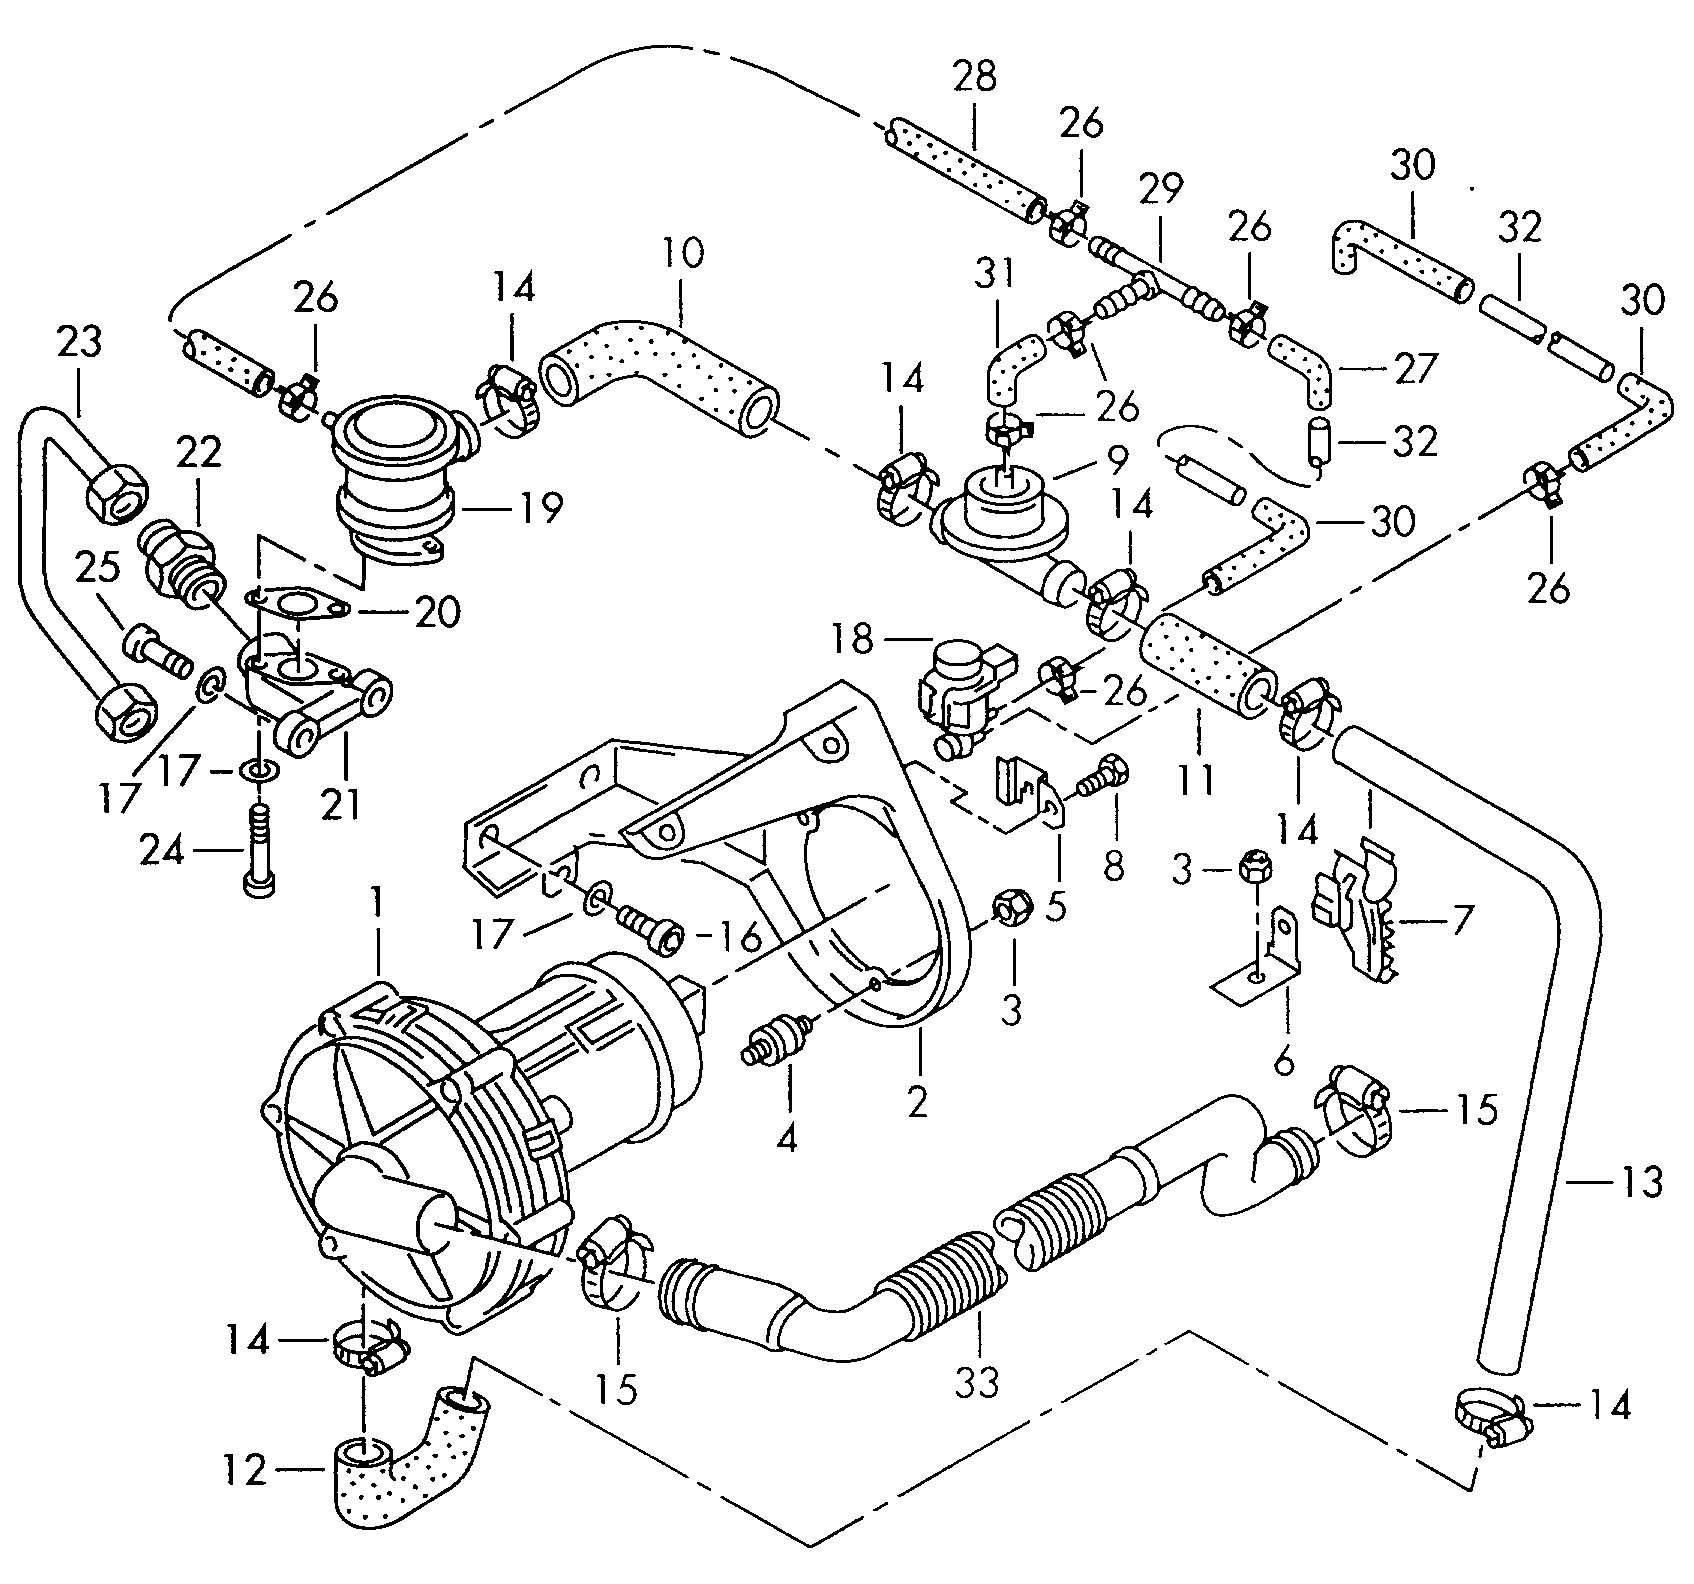 Audi A4 B7 Fuse Box Diagram. Audi. Auto Fuse Box Diagram